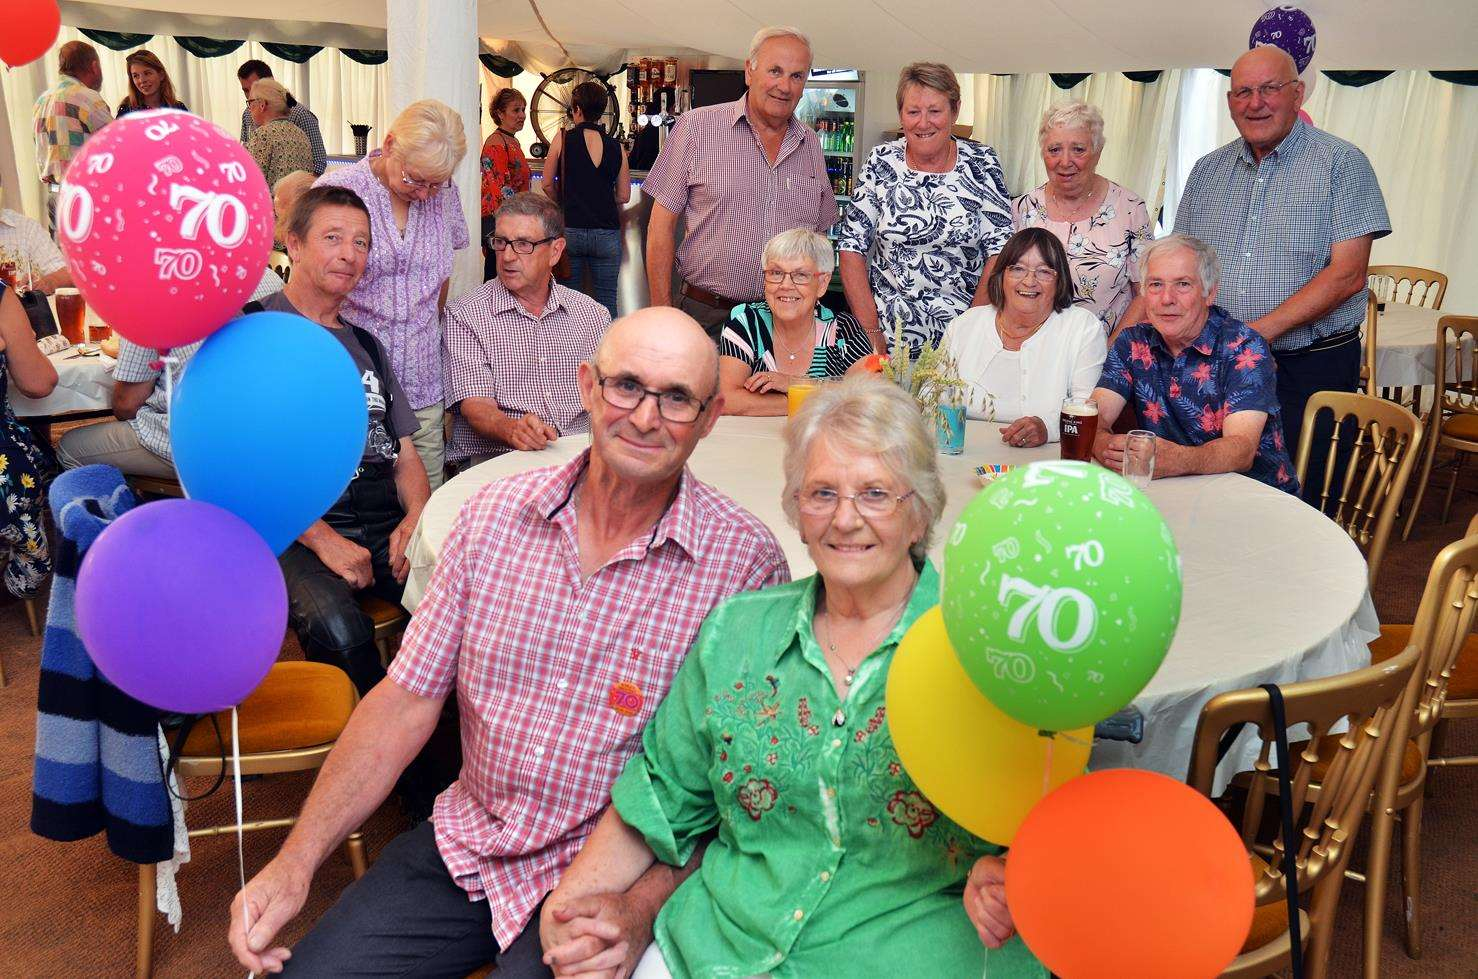 BIRTHDAY COUPLE: Eric and Marilyn Collishaw, with family, friends and neighbours, have a 70th birthday hog roast party for Lincs & Notts Air Ambulance at their home in Gedney Hill. Photo by Tim Wilson. 070718187SG.